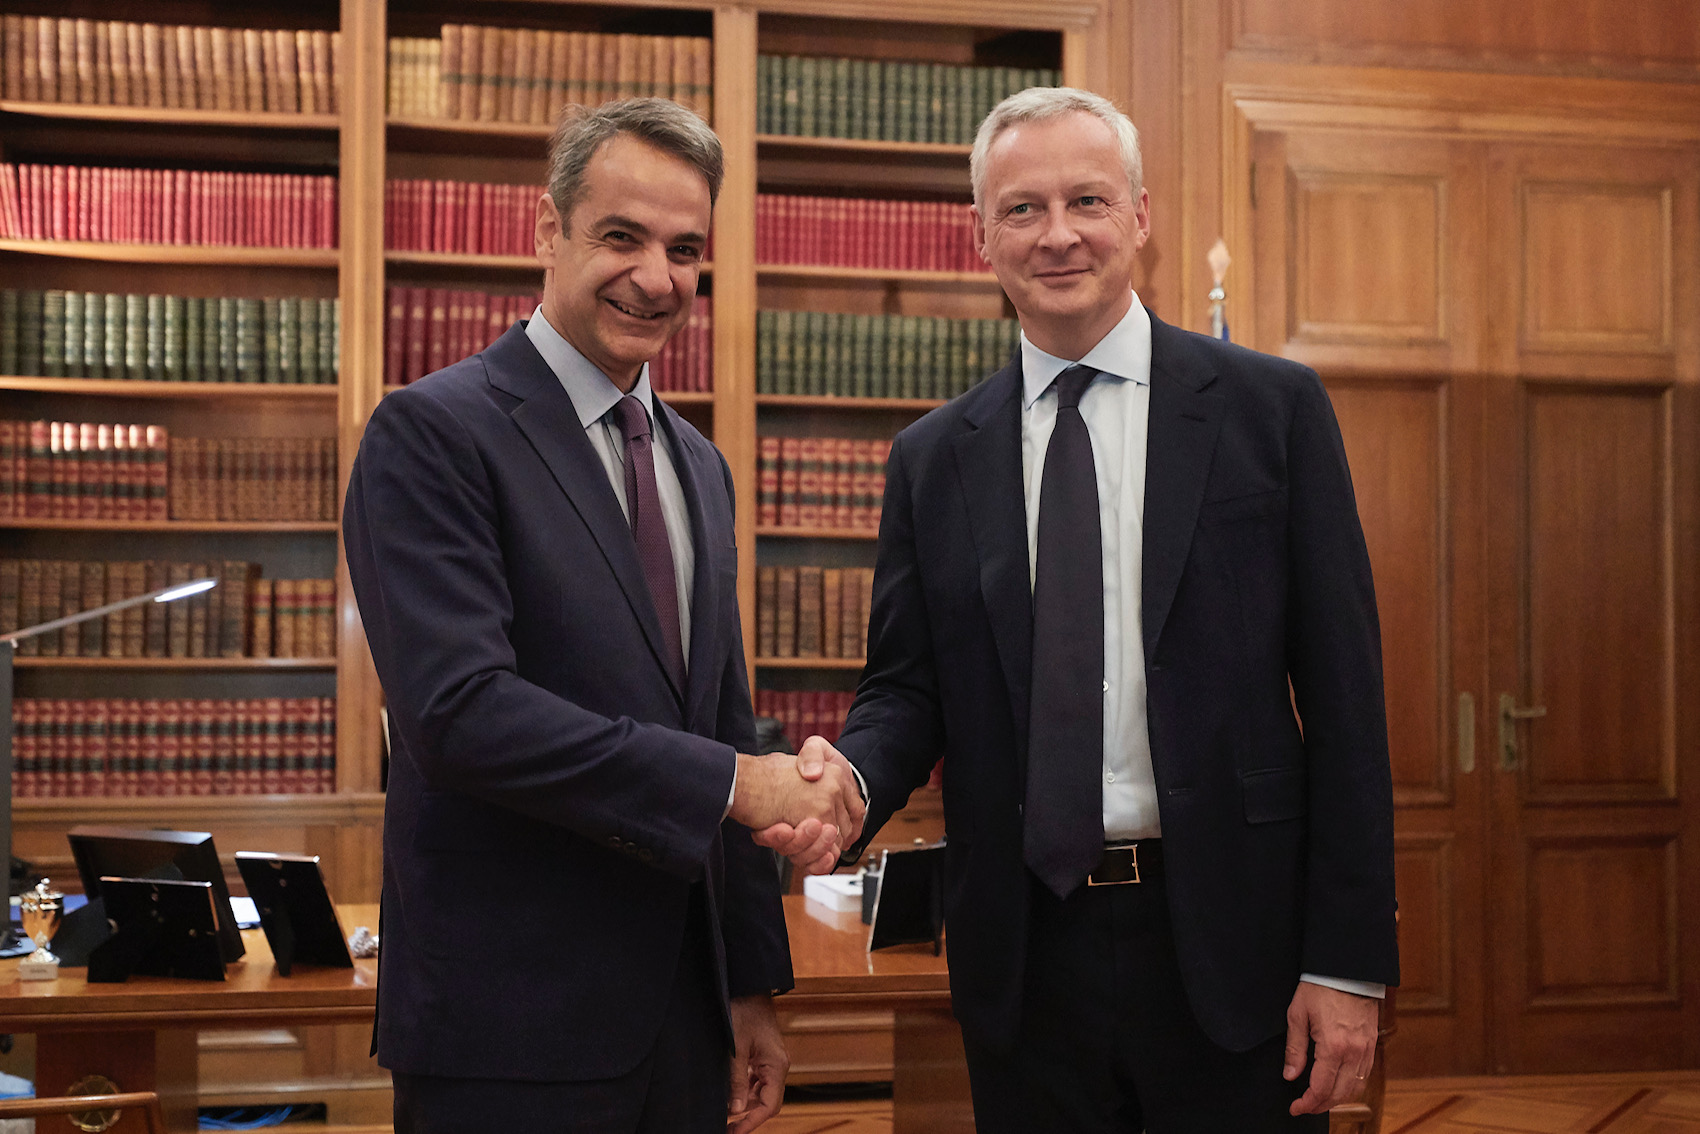 Mitsotakis meets with Le Maire in view of his trip to Paris